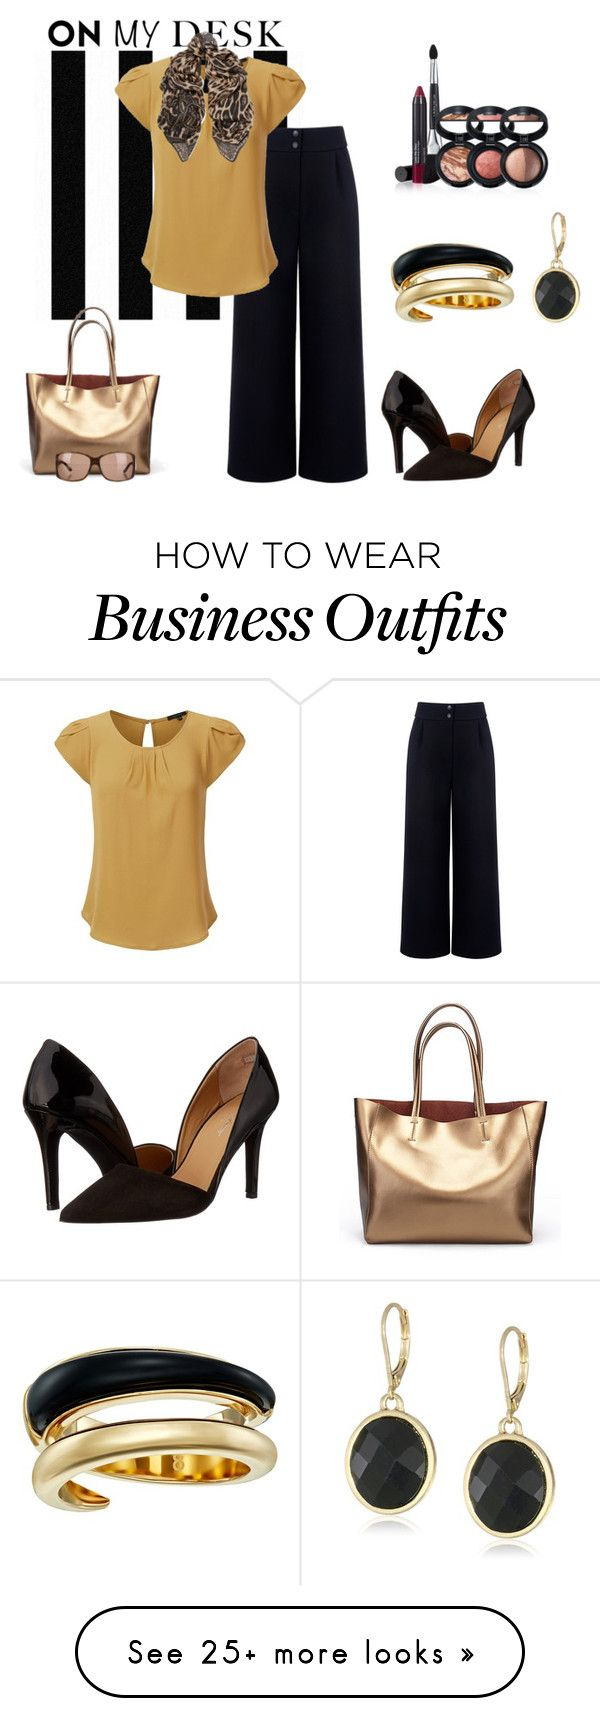 """""""WEAR TO WORK"""" by citas on Polyvore featuring Napier, Être Cécile, Laura Geller, Massimo Matteo, Roberto Cavalli, Tom Ford and Michael Kors"""